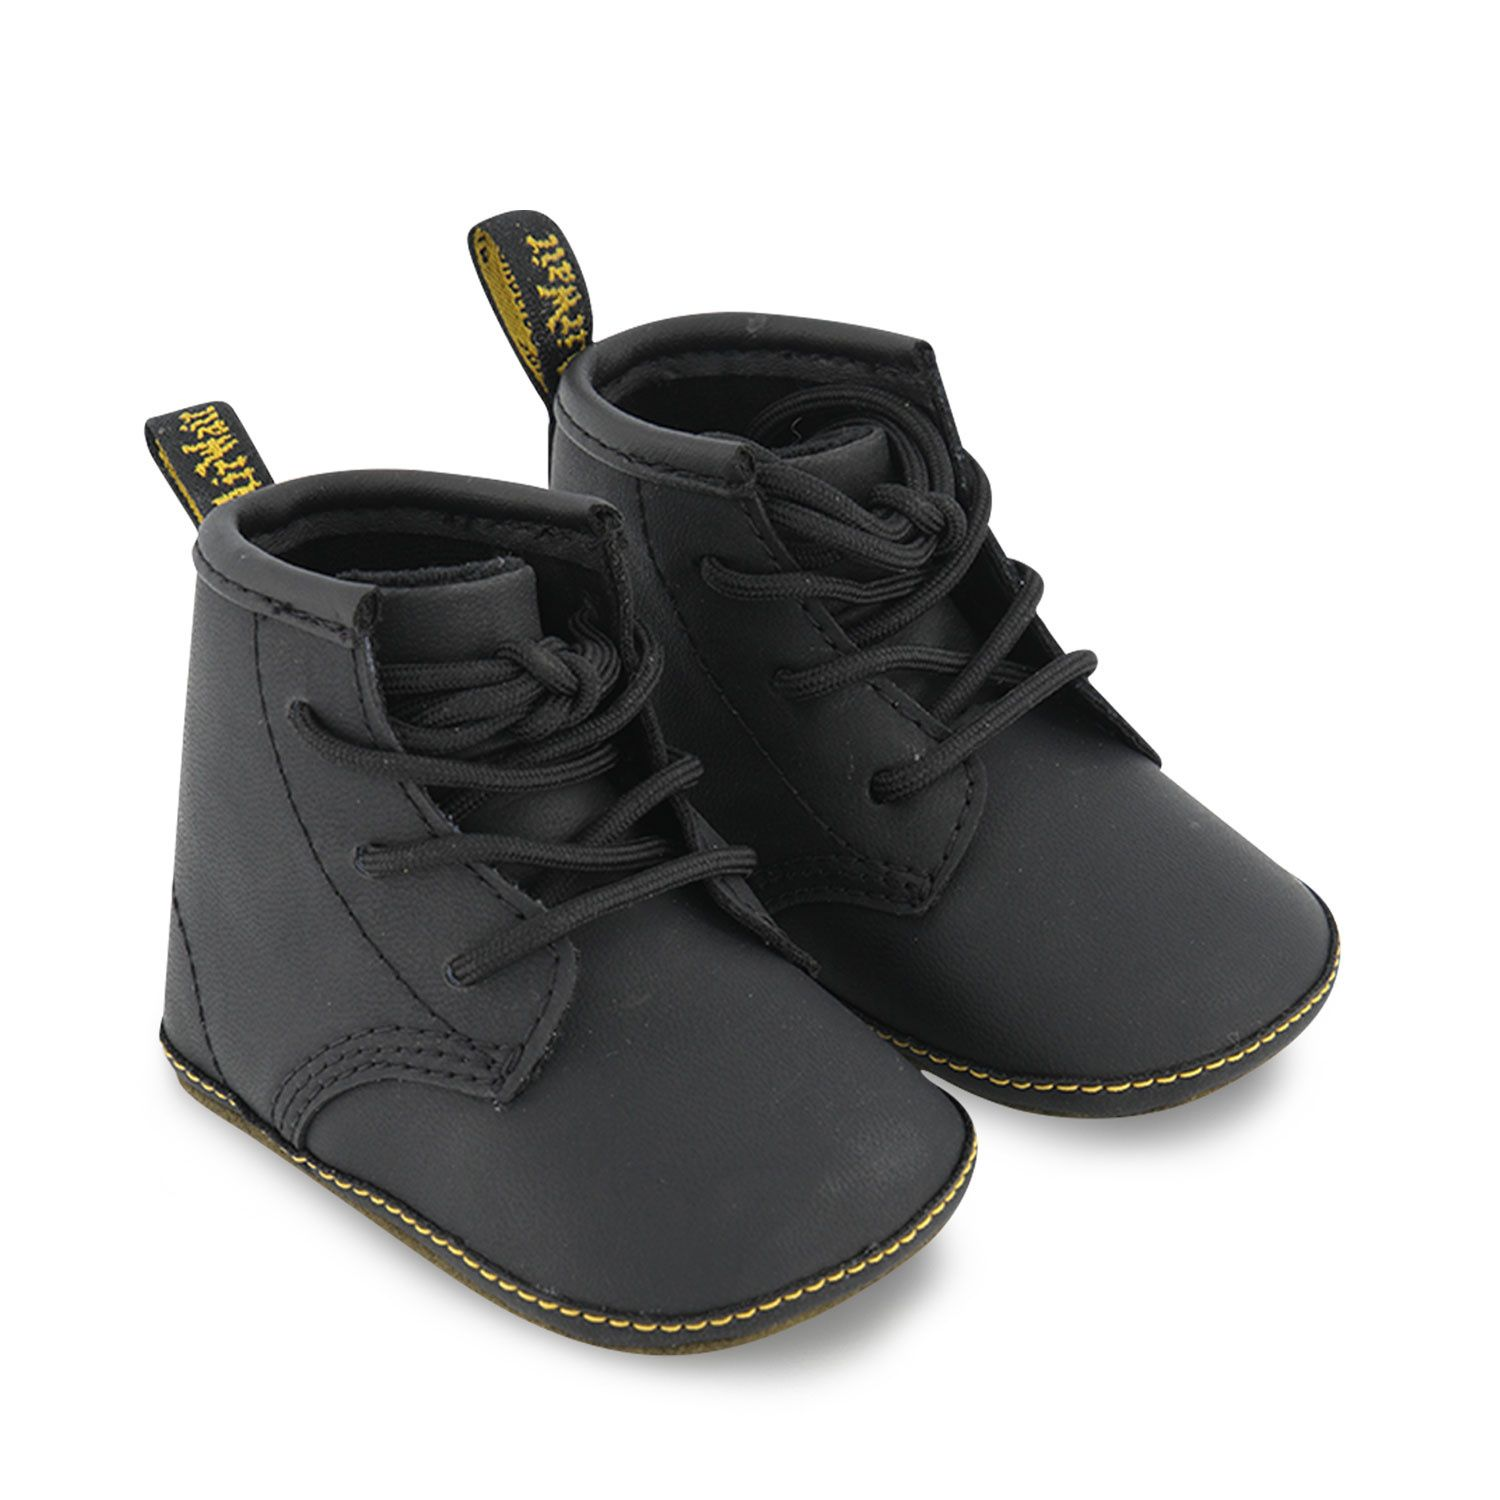 Picture of Dr. Martens 26808 baby shoes black